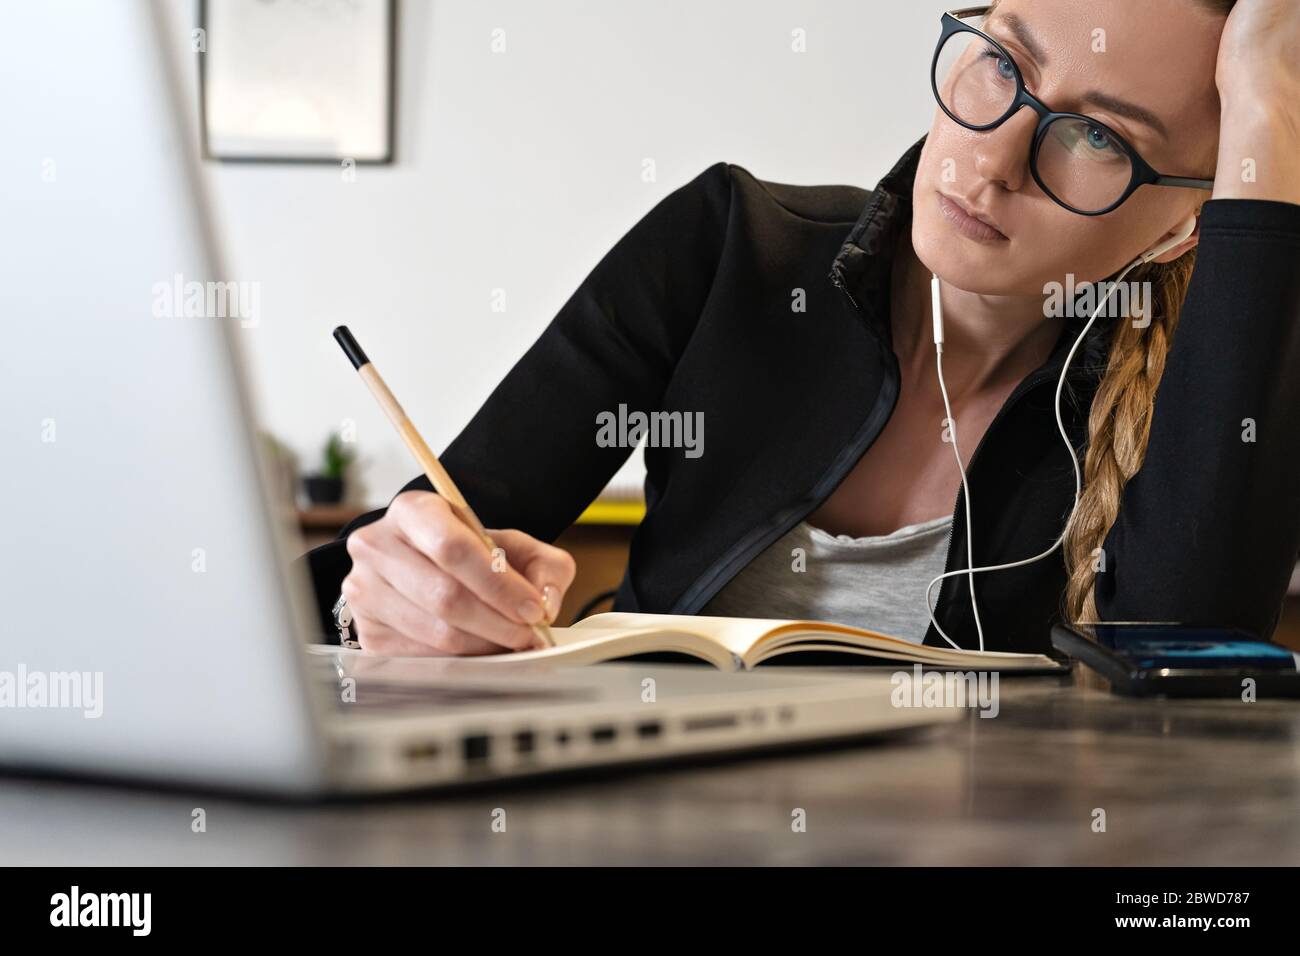 tired business woman working online or study education using laptop note pad, Remote working. Online teacher or Coach Stock Photo